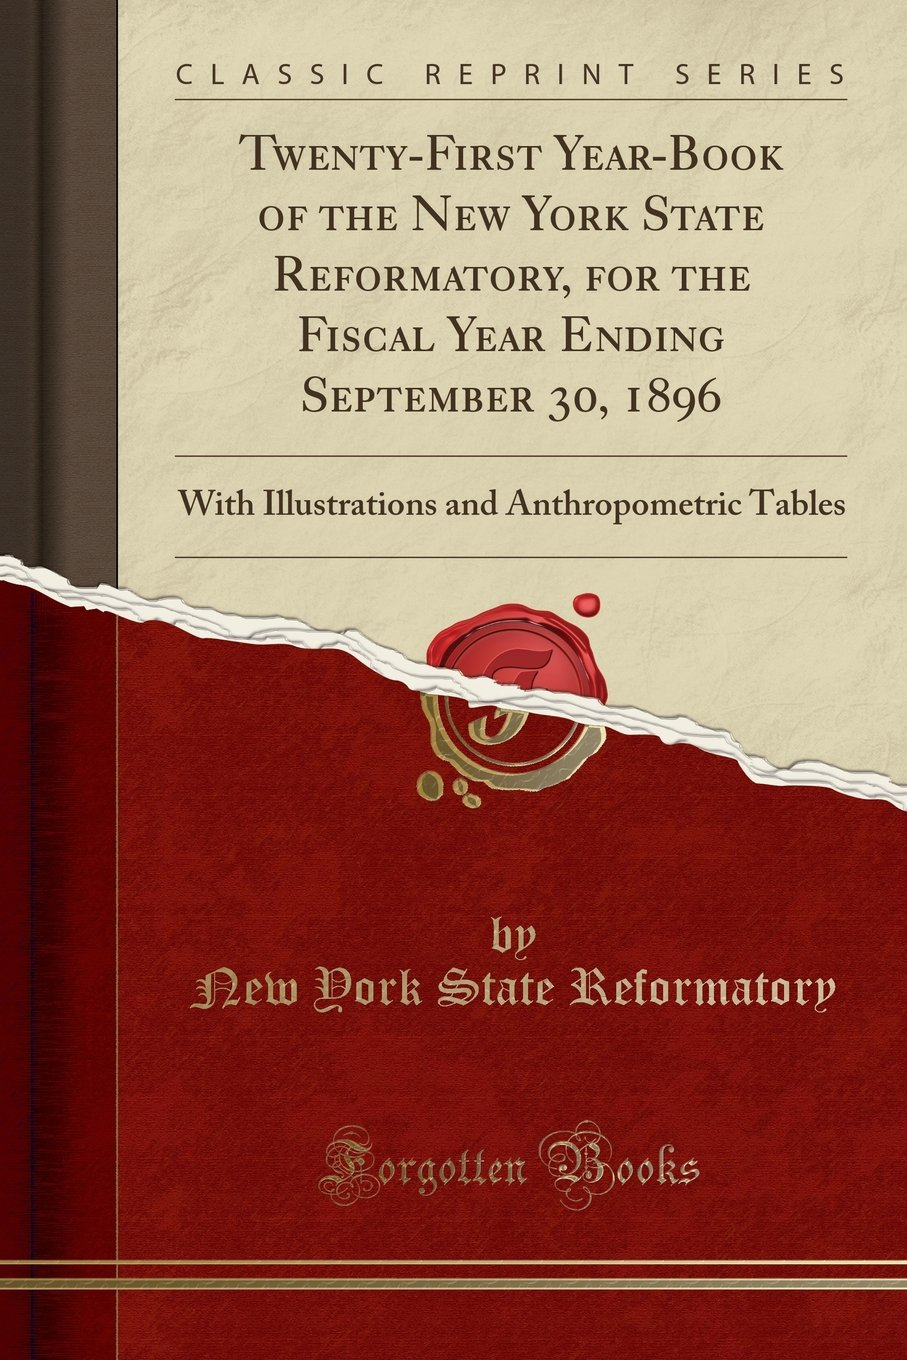 Twenty-First Year-Book of the New York State Reformatory, for the Fiscal Year Ending September 30, 1896: With Illustrations and Anthropometric Tables (Classic Reprint) ebook